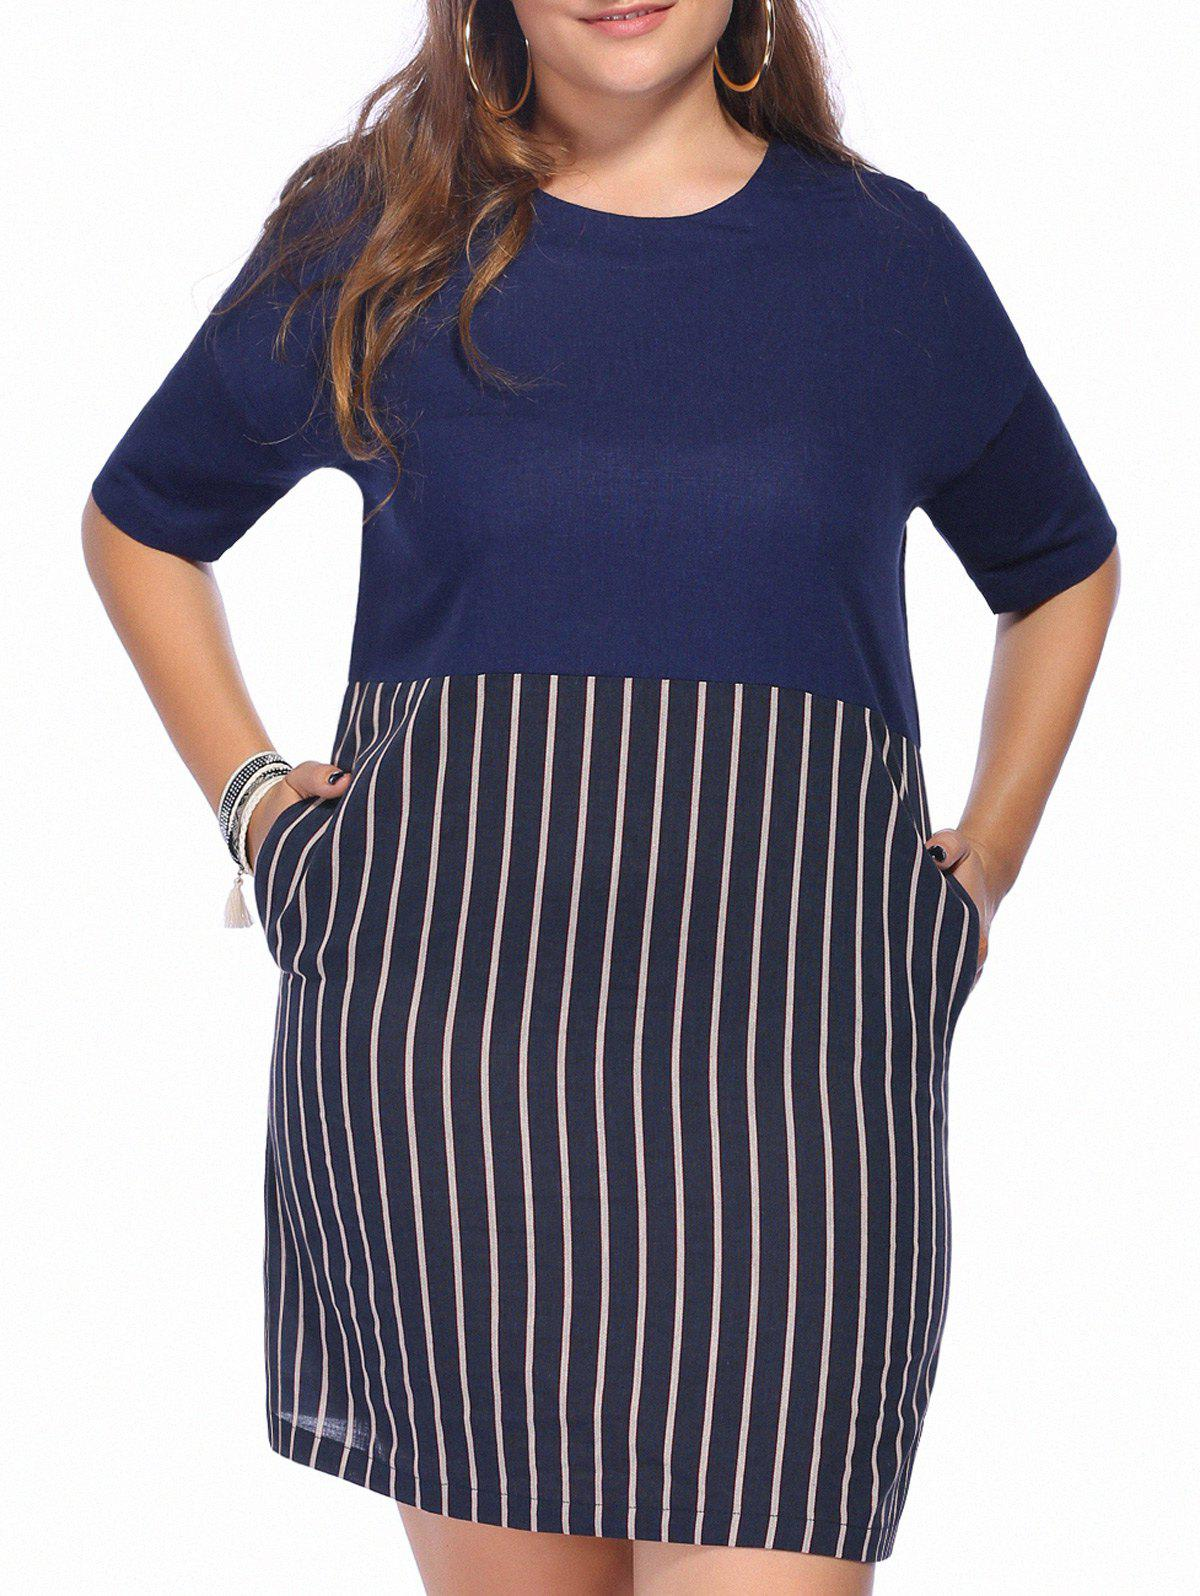 Casual Plus Size Striped Color Block Women's Dress - BLUE 5XL